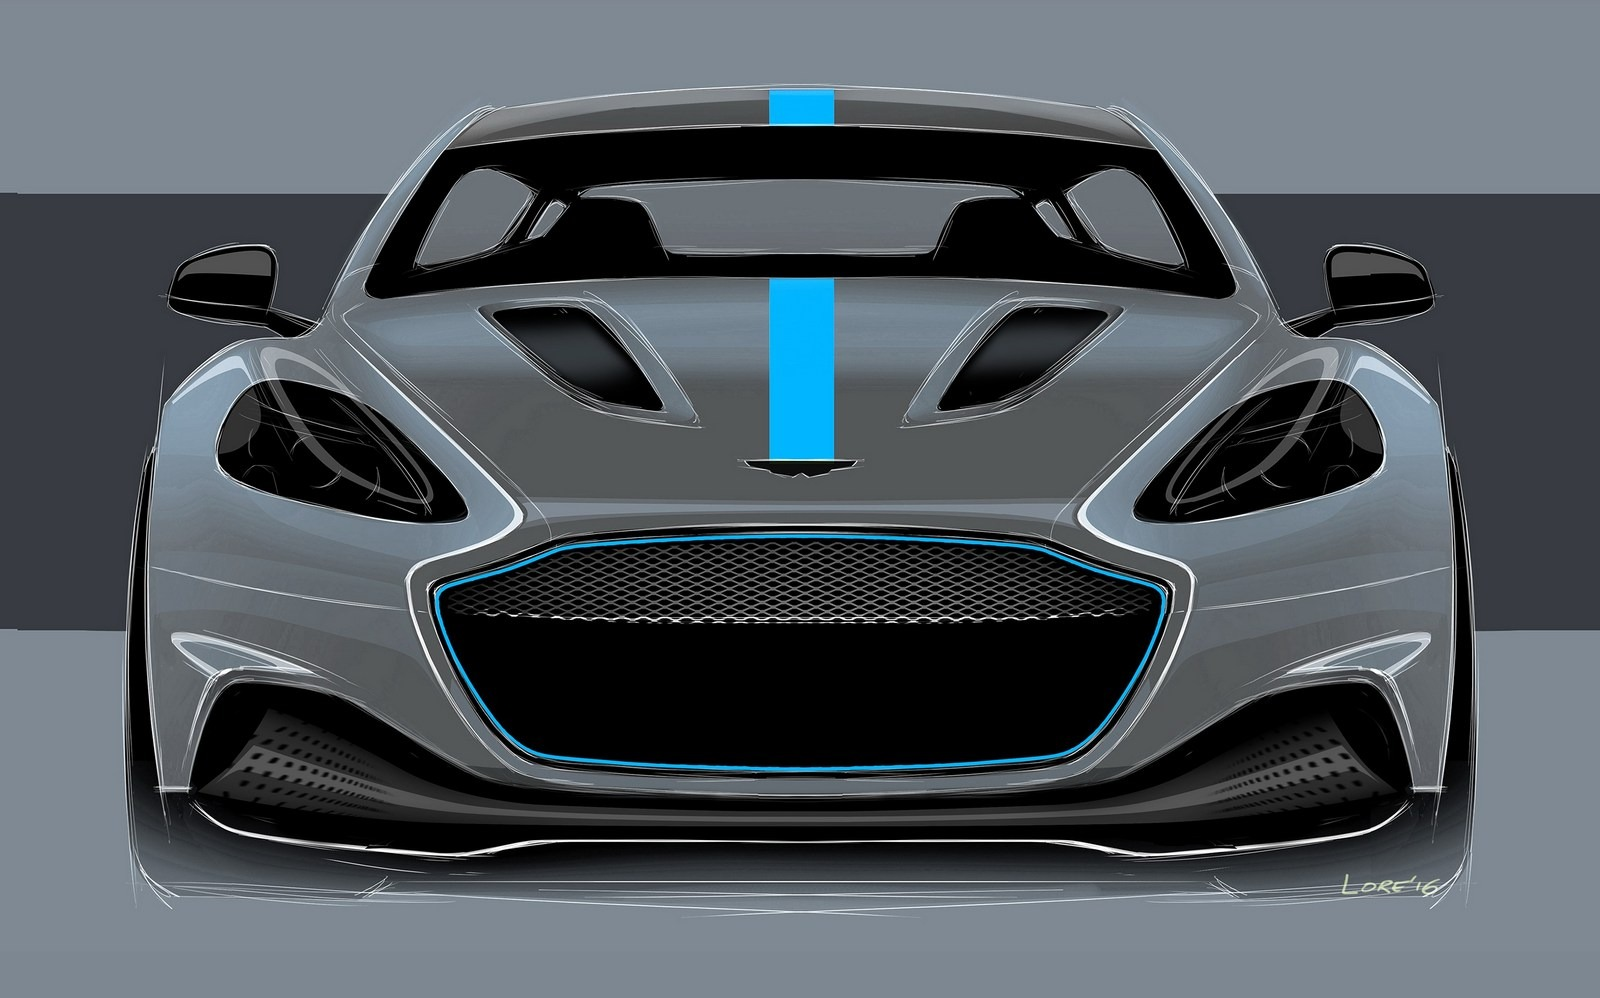 Aston Martin S Rapide To Use Fast Charging 800 Volt Battery Technology